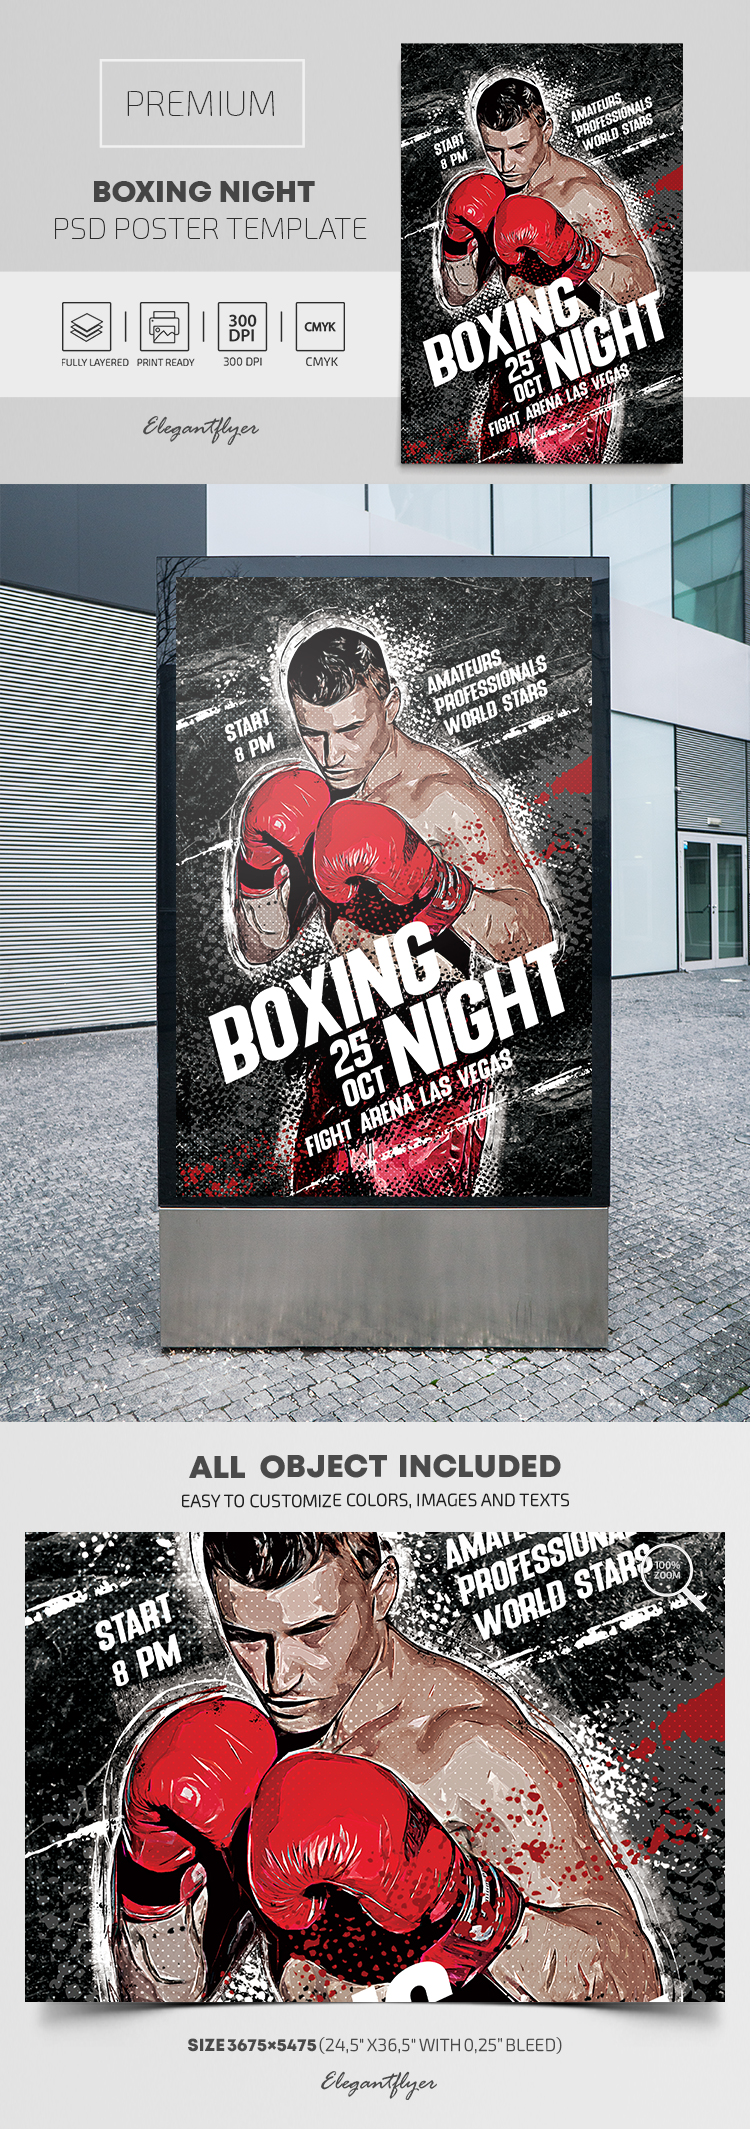 Boxing Night – Premium PSD Poster Template